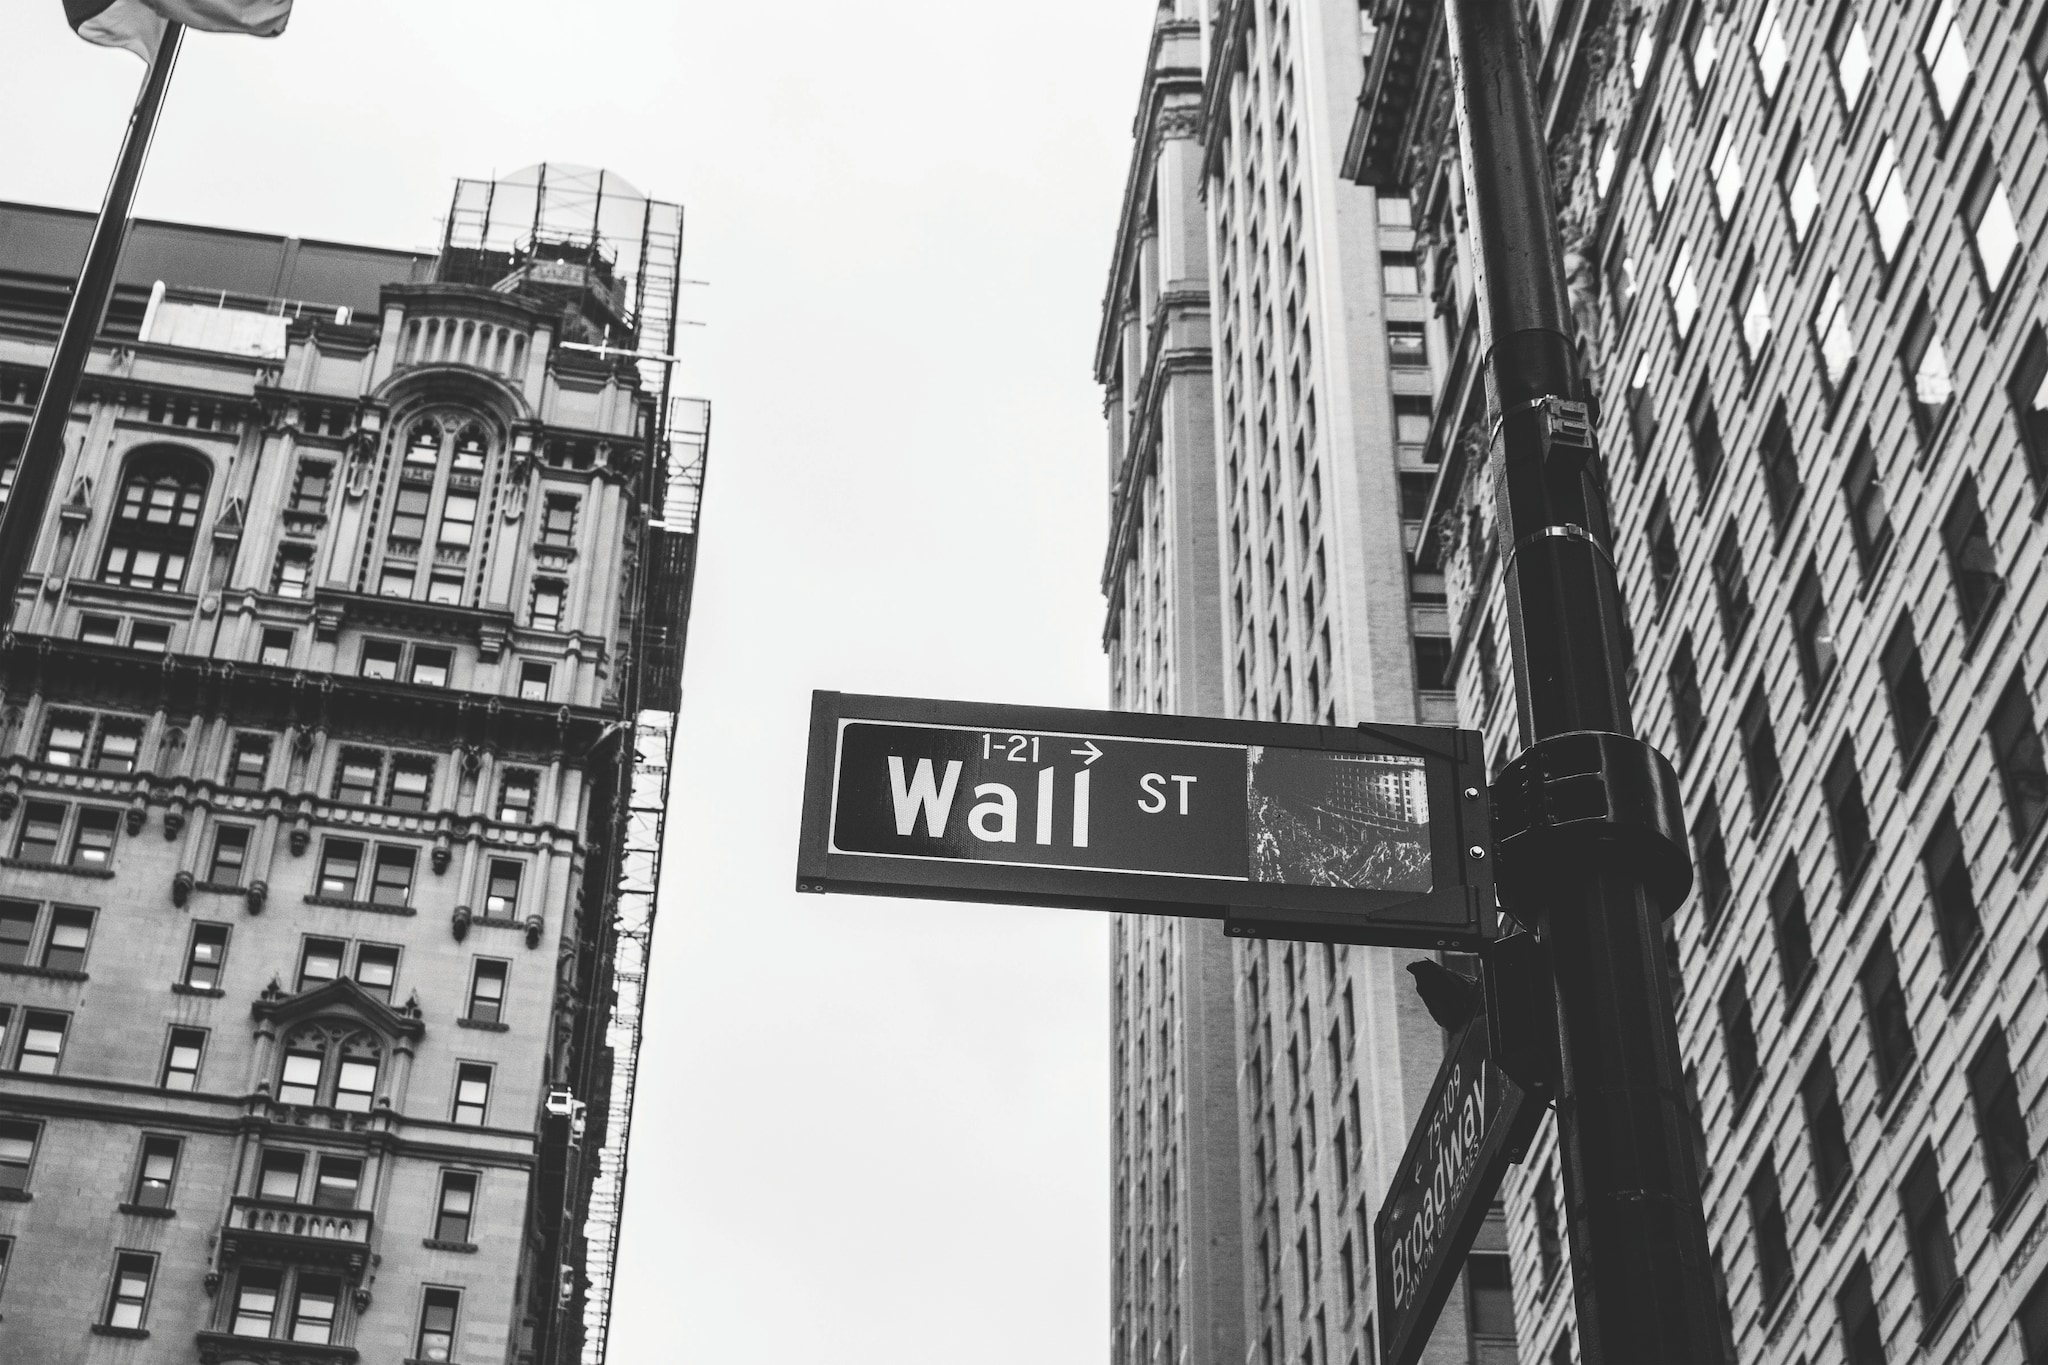 2. US: The Dow Jones Industrial Average fell 460.19 points, or 1.77 percent, to 25,502.32, the S&P 500 lost 54.17 points, or 1.90 percent, to 2,800.71 and the Nasdaq Composite dropped 196.29 points, or 2.5 percent, to 7,642.67 on Friday. (Image: Reuters)